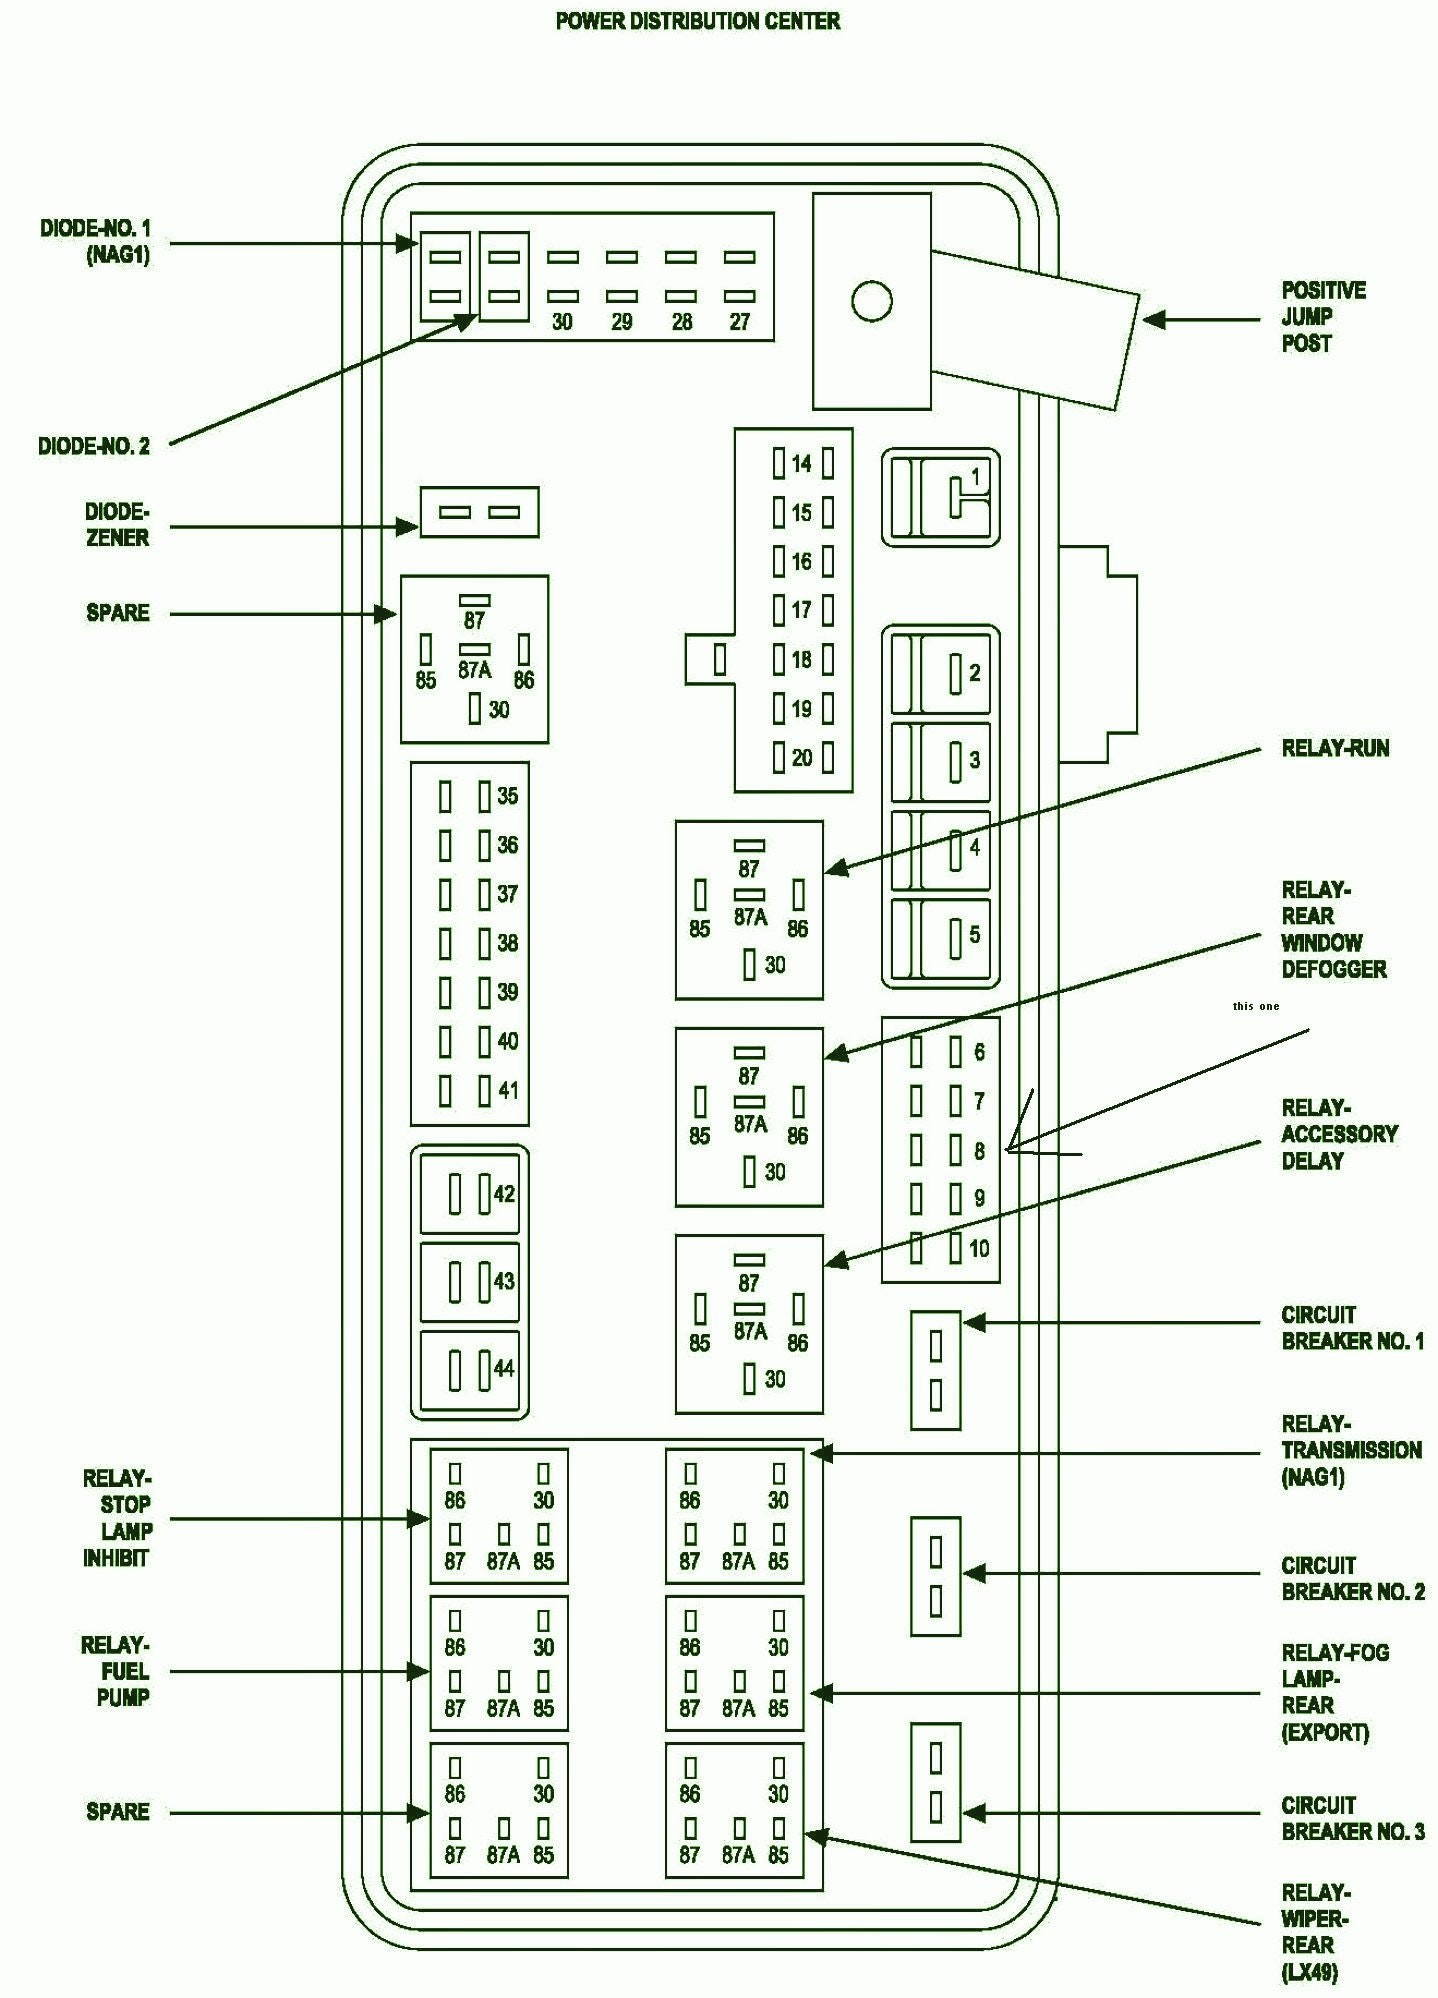 [SCHEMATICS_44OR]  0C562 2007 Dodge Ram 1500 Fuse Box | Wiring Library | 2007 Dodge Ram 1500 Hemi Fuse Box |  | Wiring Library